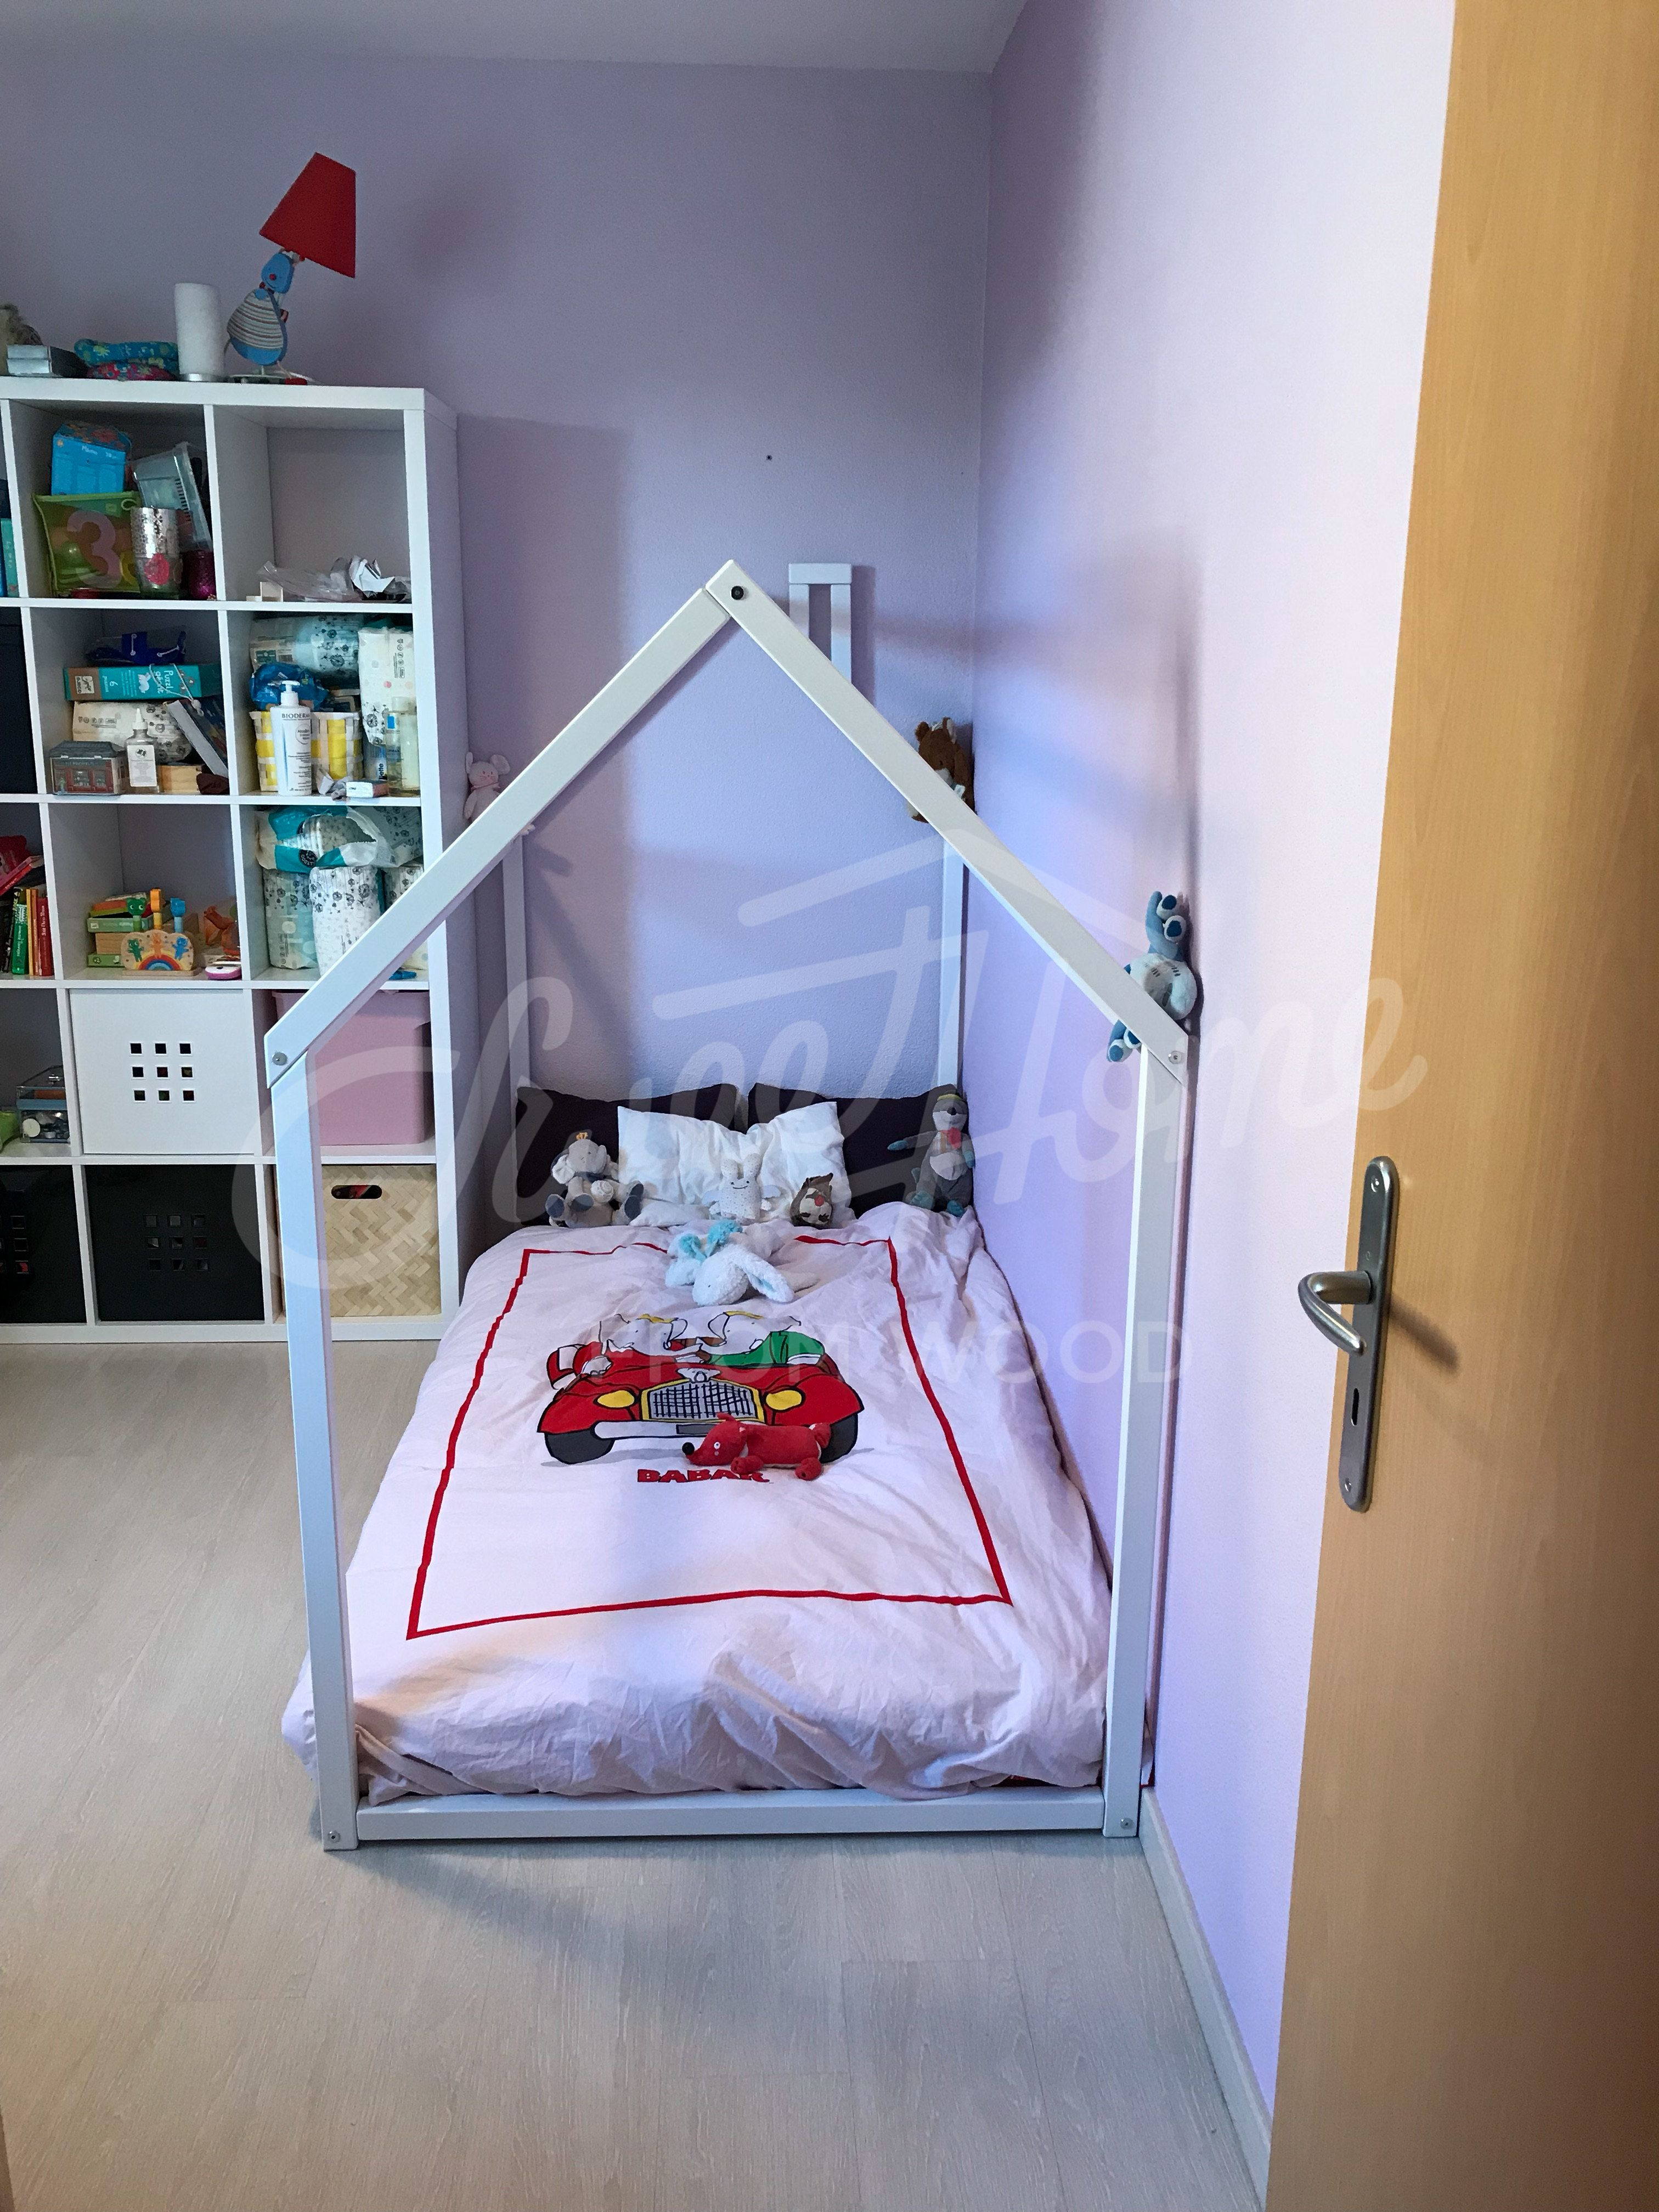 Girls Room Idea With White Bed, Toddler Bed, House Bed, Tent Bed, Children  Bed, Wooden House, Wood House, Wood Nursery, Kids Teepee Bed, Wood Bed Frame,  ...